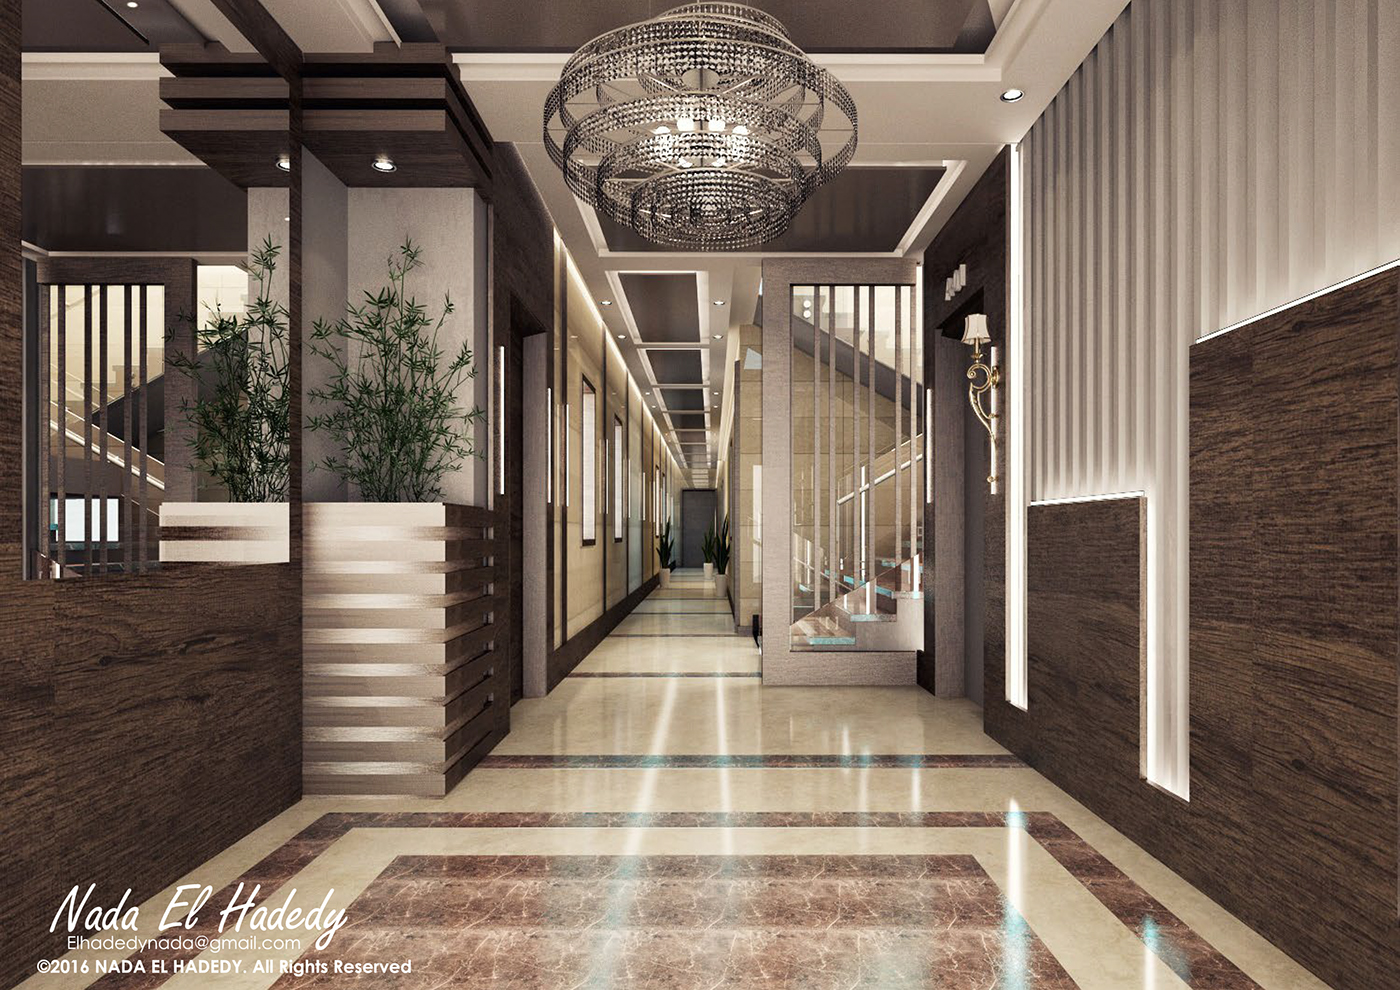 Residential building entrance on Behance